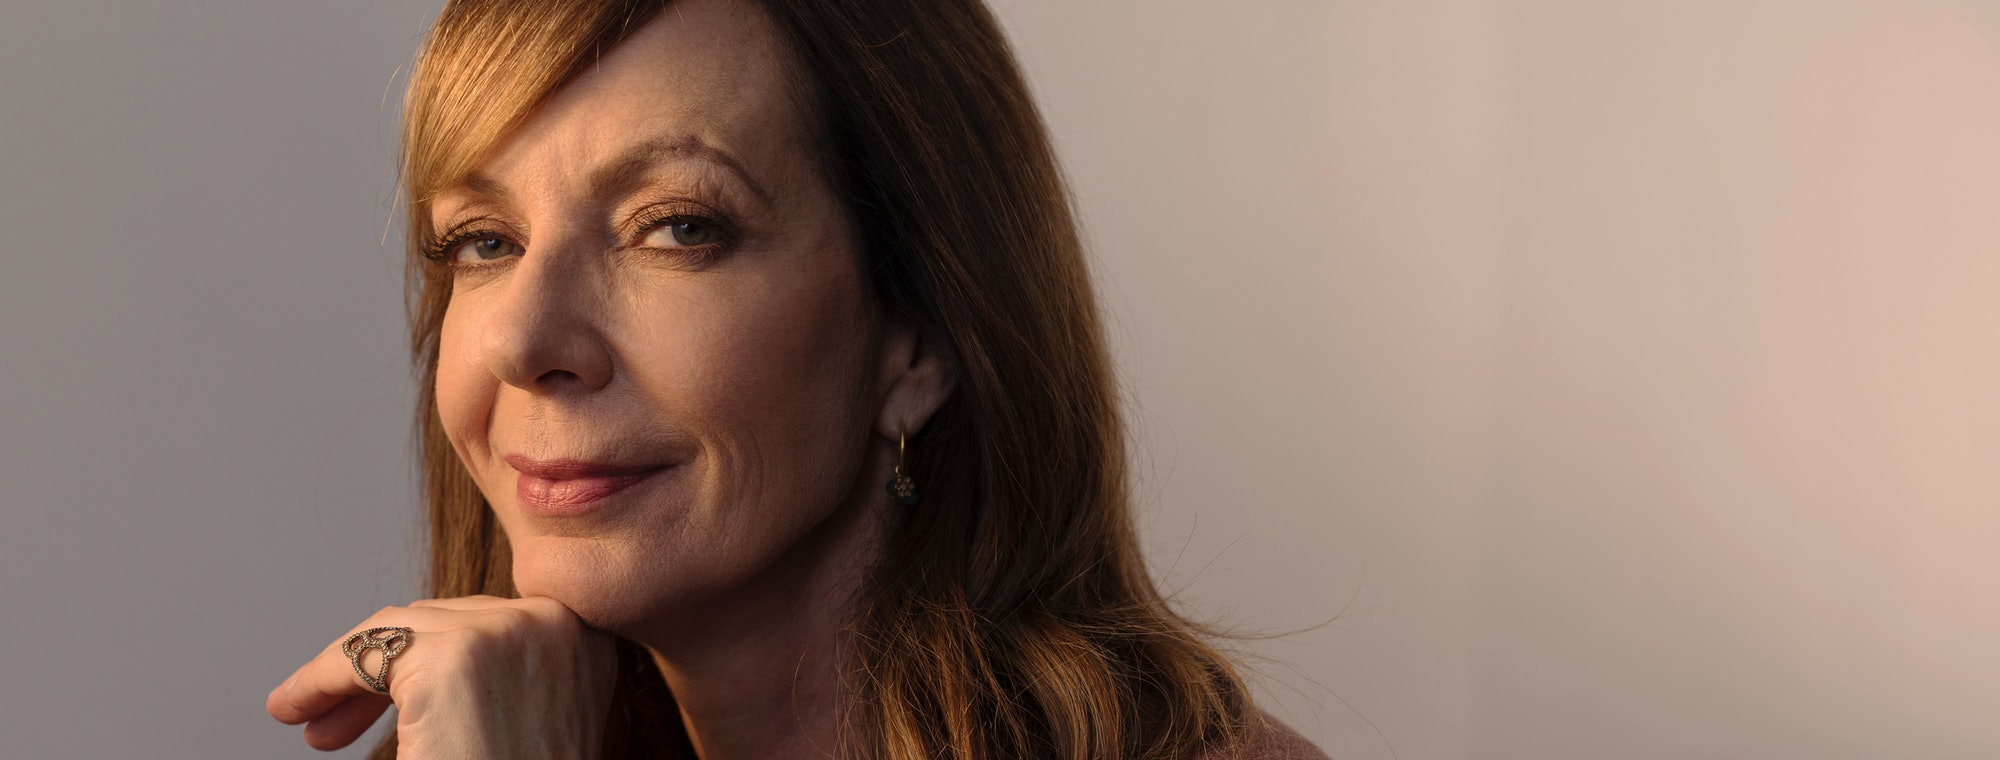 Allison Janney Pics how allison janney gets through the mess that's 2017 with